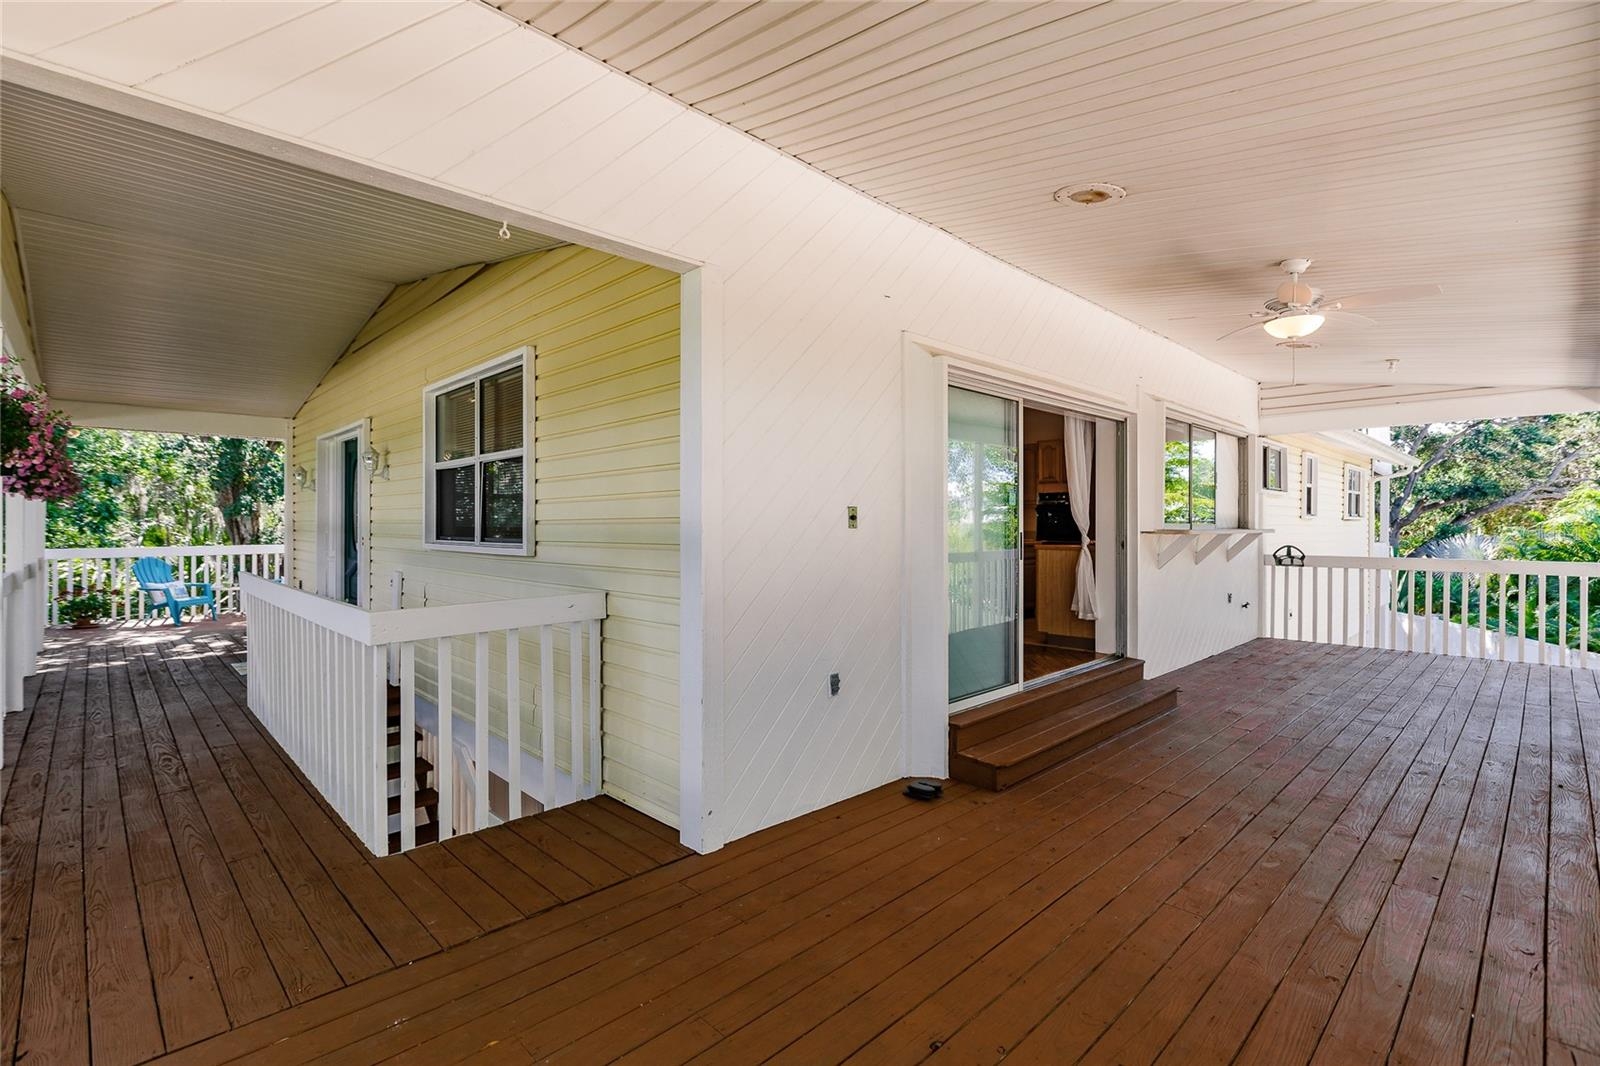 Single Family Home for sale at 7811 27th Ave W, Bradenton, FL 34209 - MLS Number is A4499385